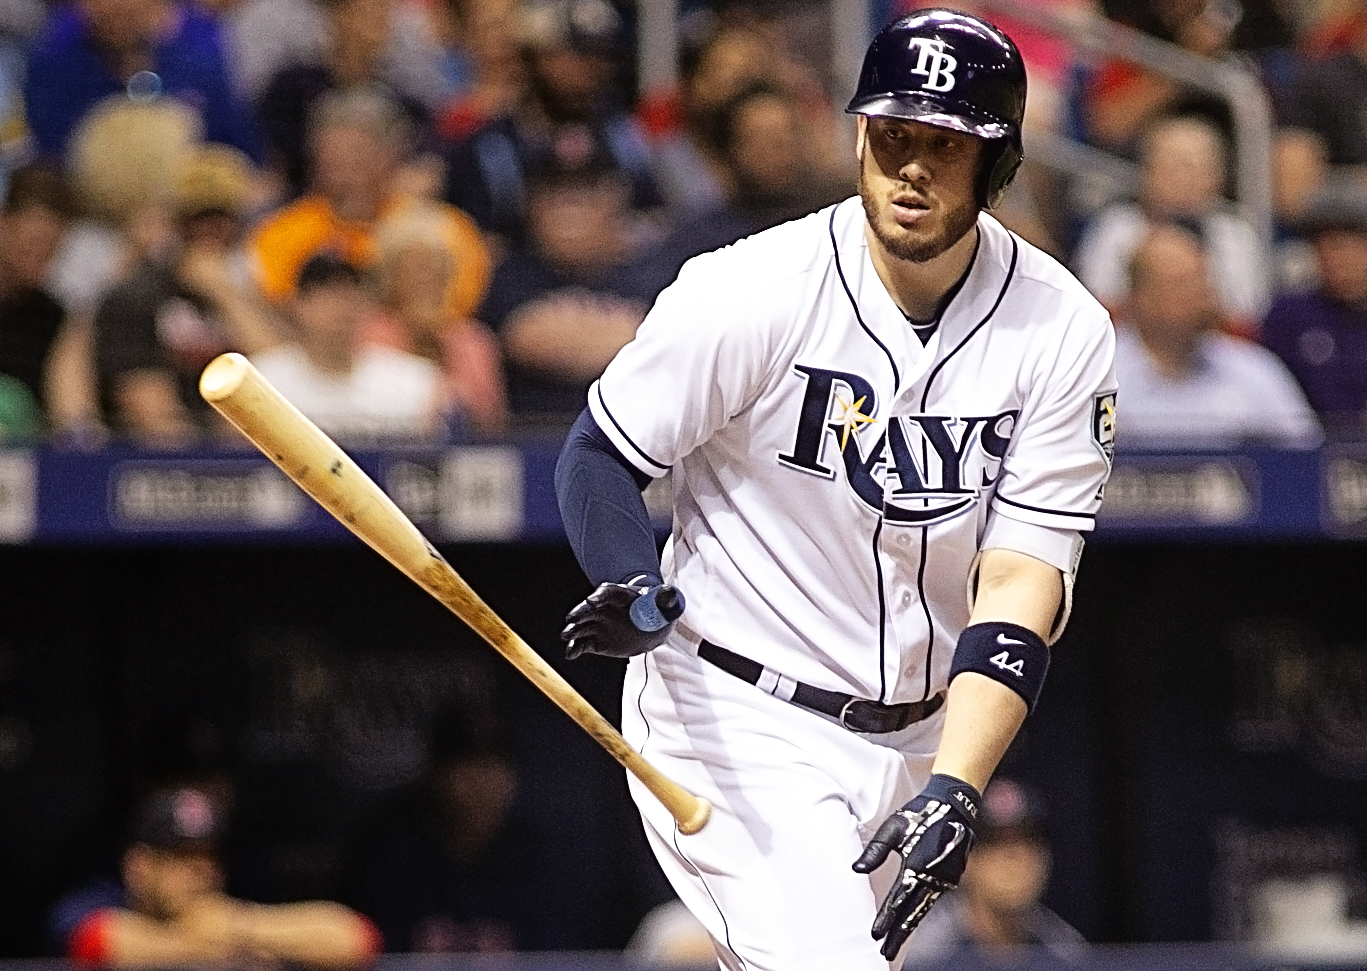 Cron leads the Rays in home runs./CARMEN MANDATO